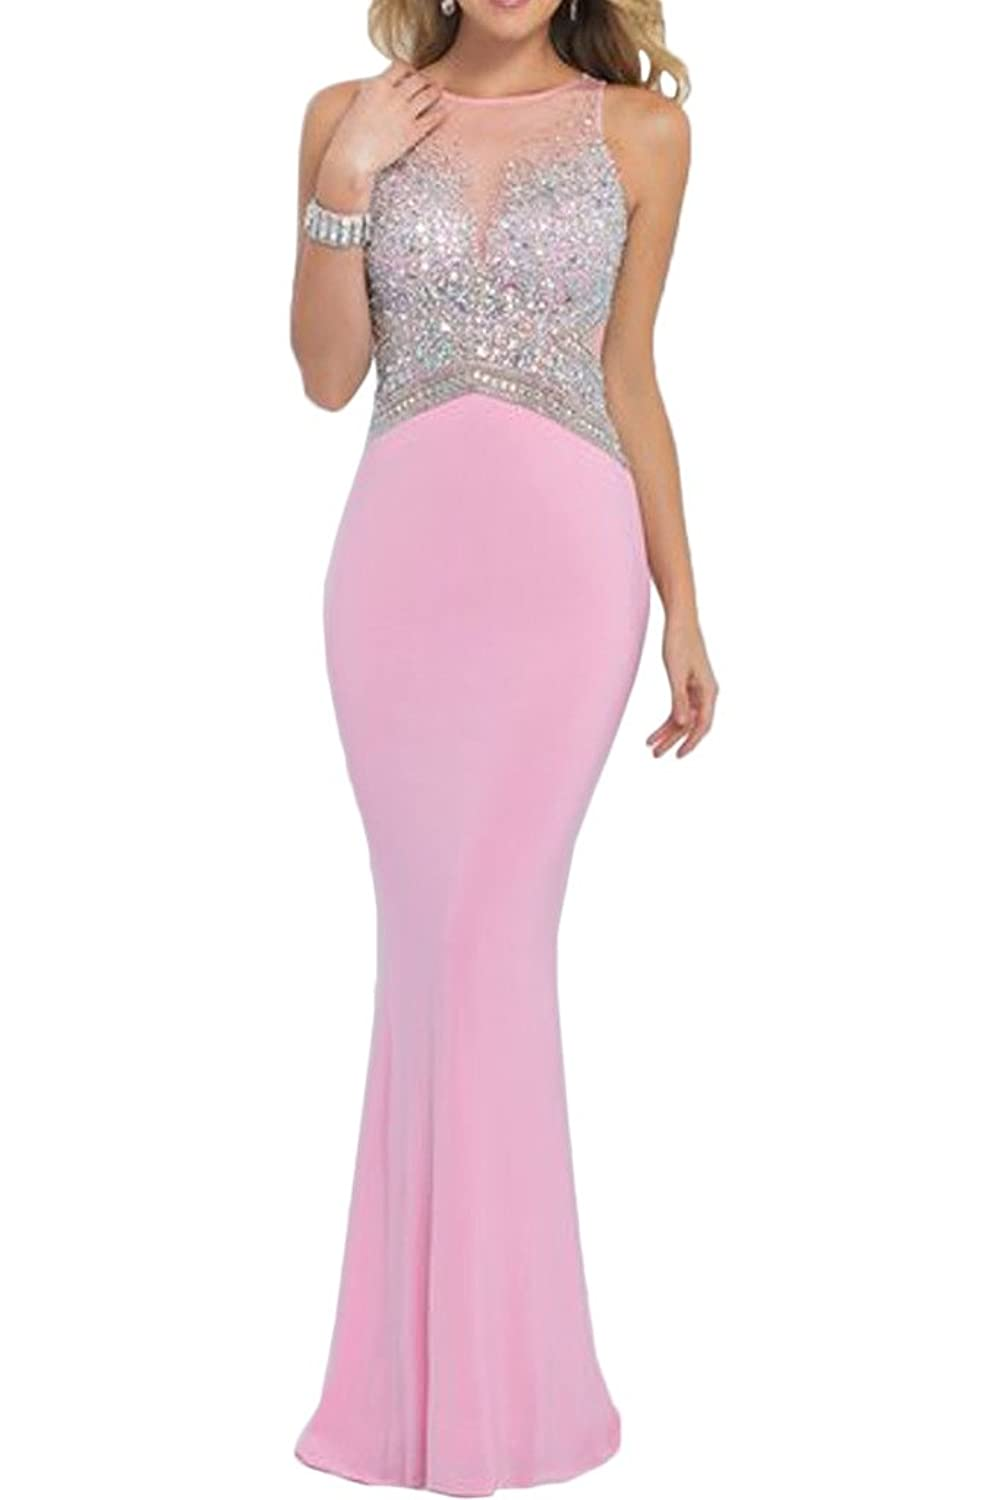 Gorgeous Bride Mermaid Scoop Rhinestones Prom Evening Wedding Guest Dresses